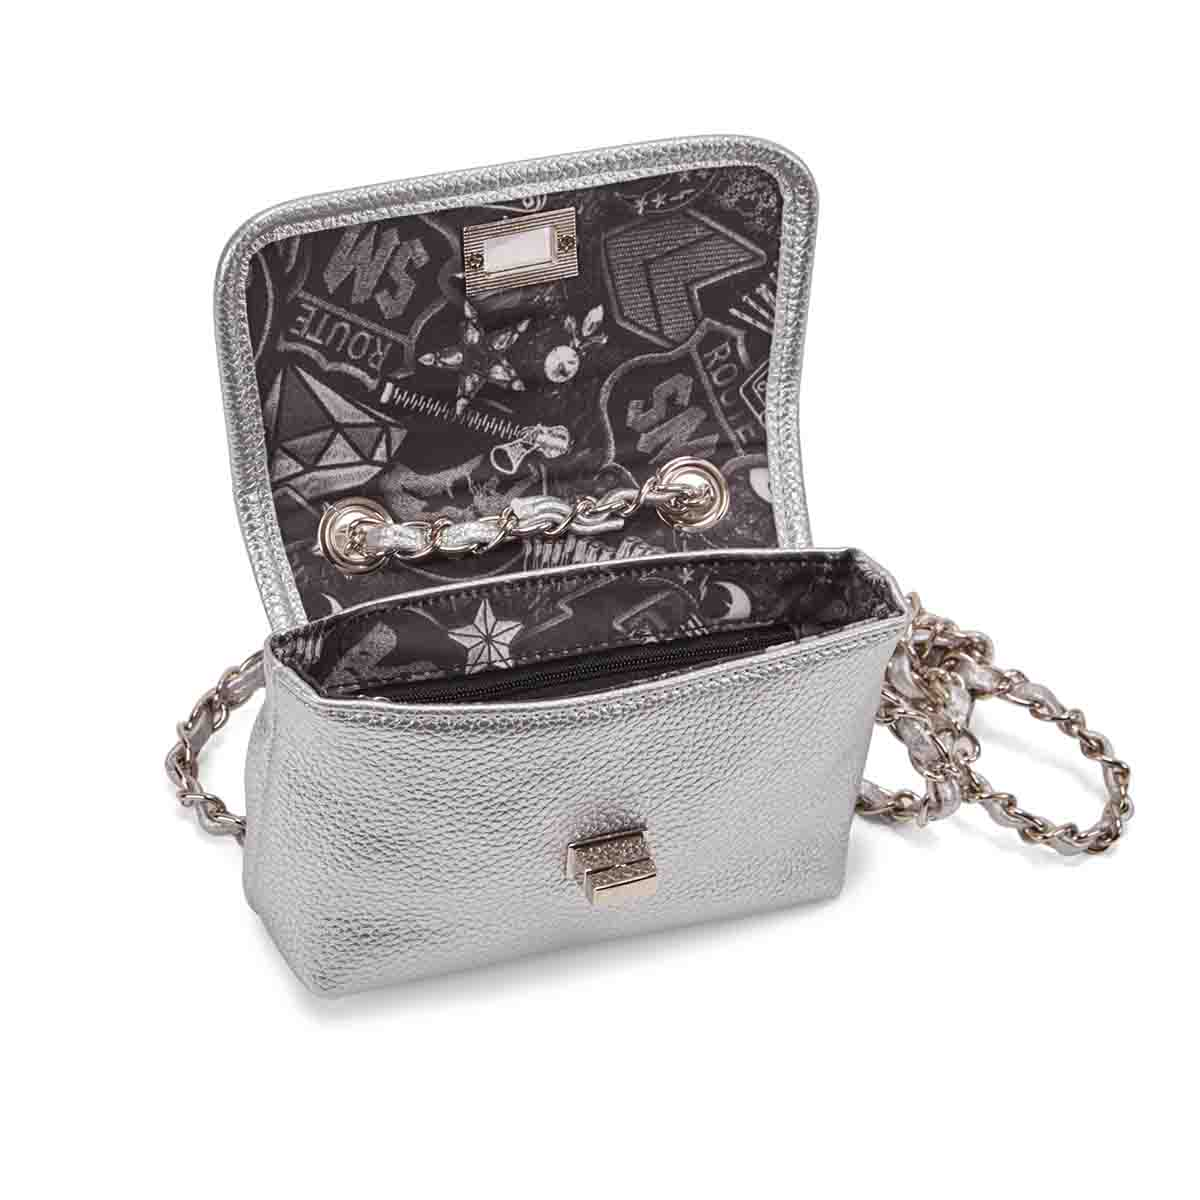 Lds BHayley silver cross body bag